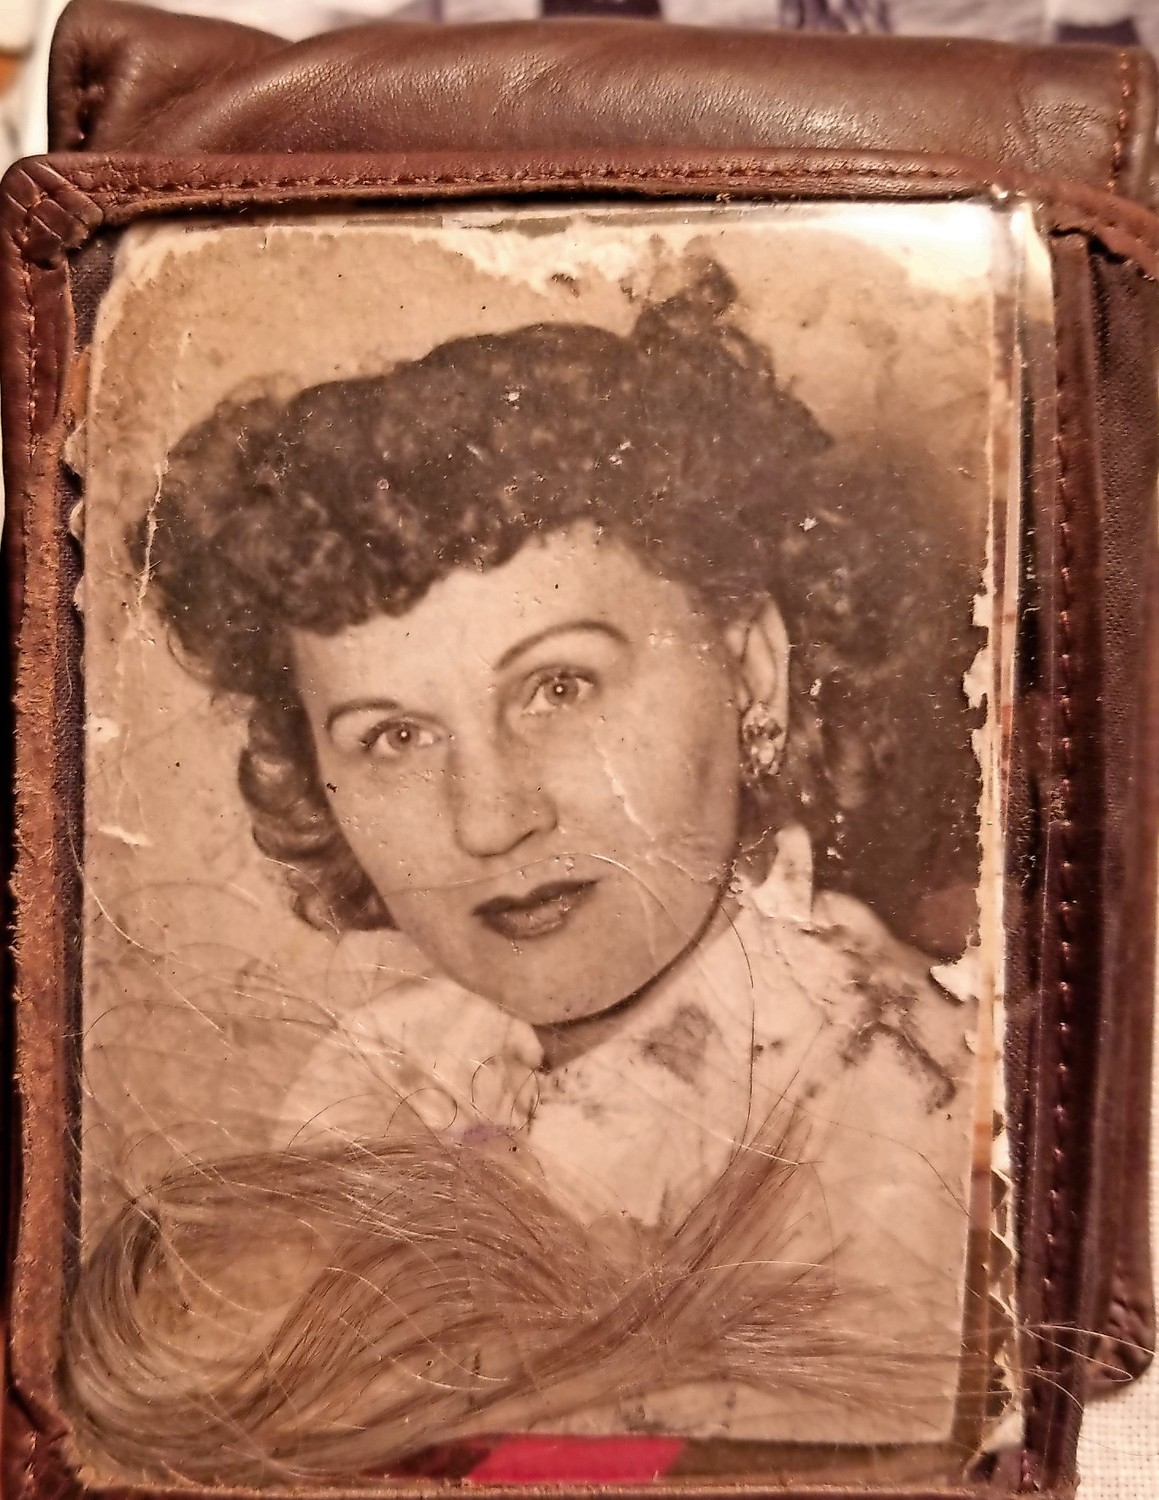 Charlie Franza keeps a photo he took of his late wife, Nettie, in a wallet showcased in his room. He slipped a lock of her hair in the pocket, he said.